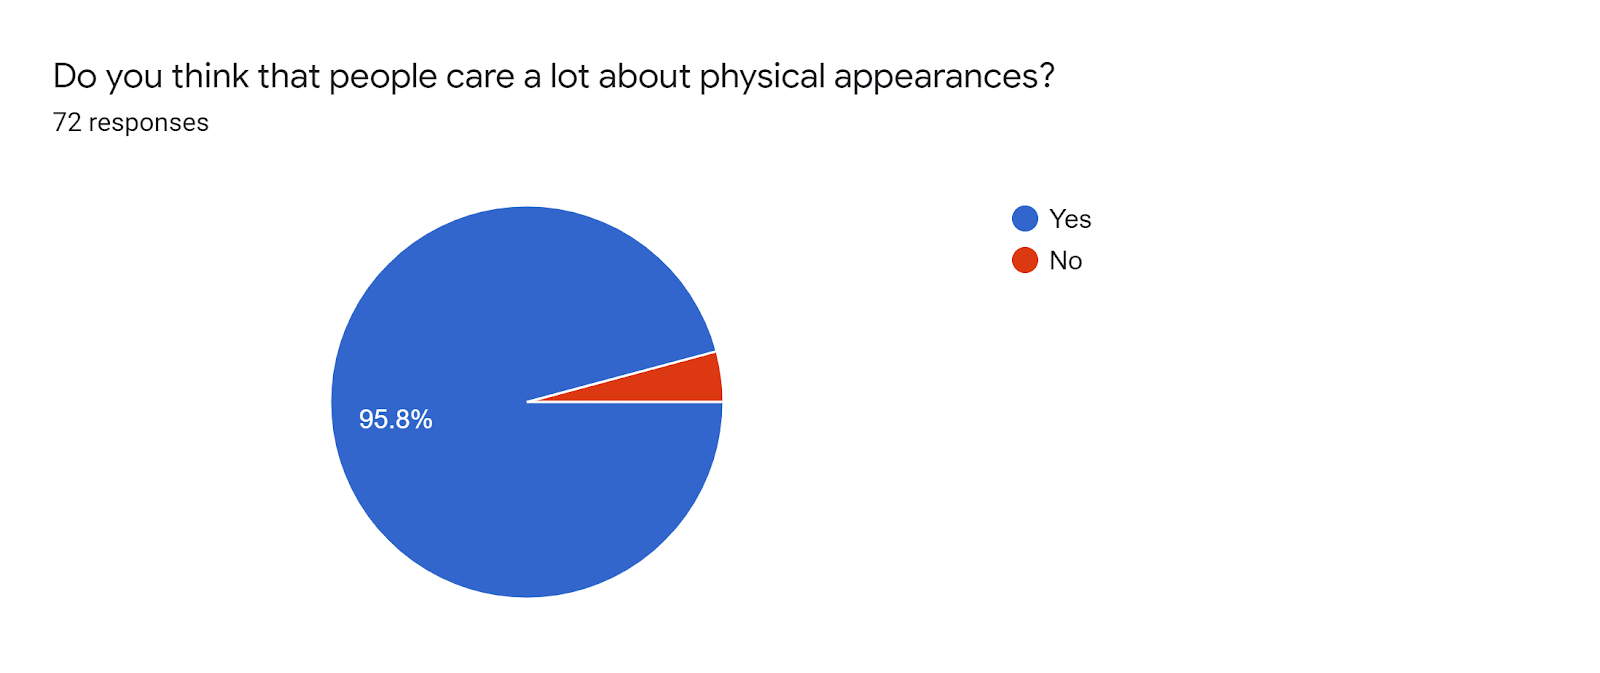 Forms response chart. Question title: Do you think that people care a lot about physical appearances?. Number of responses: 72 responses.